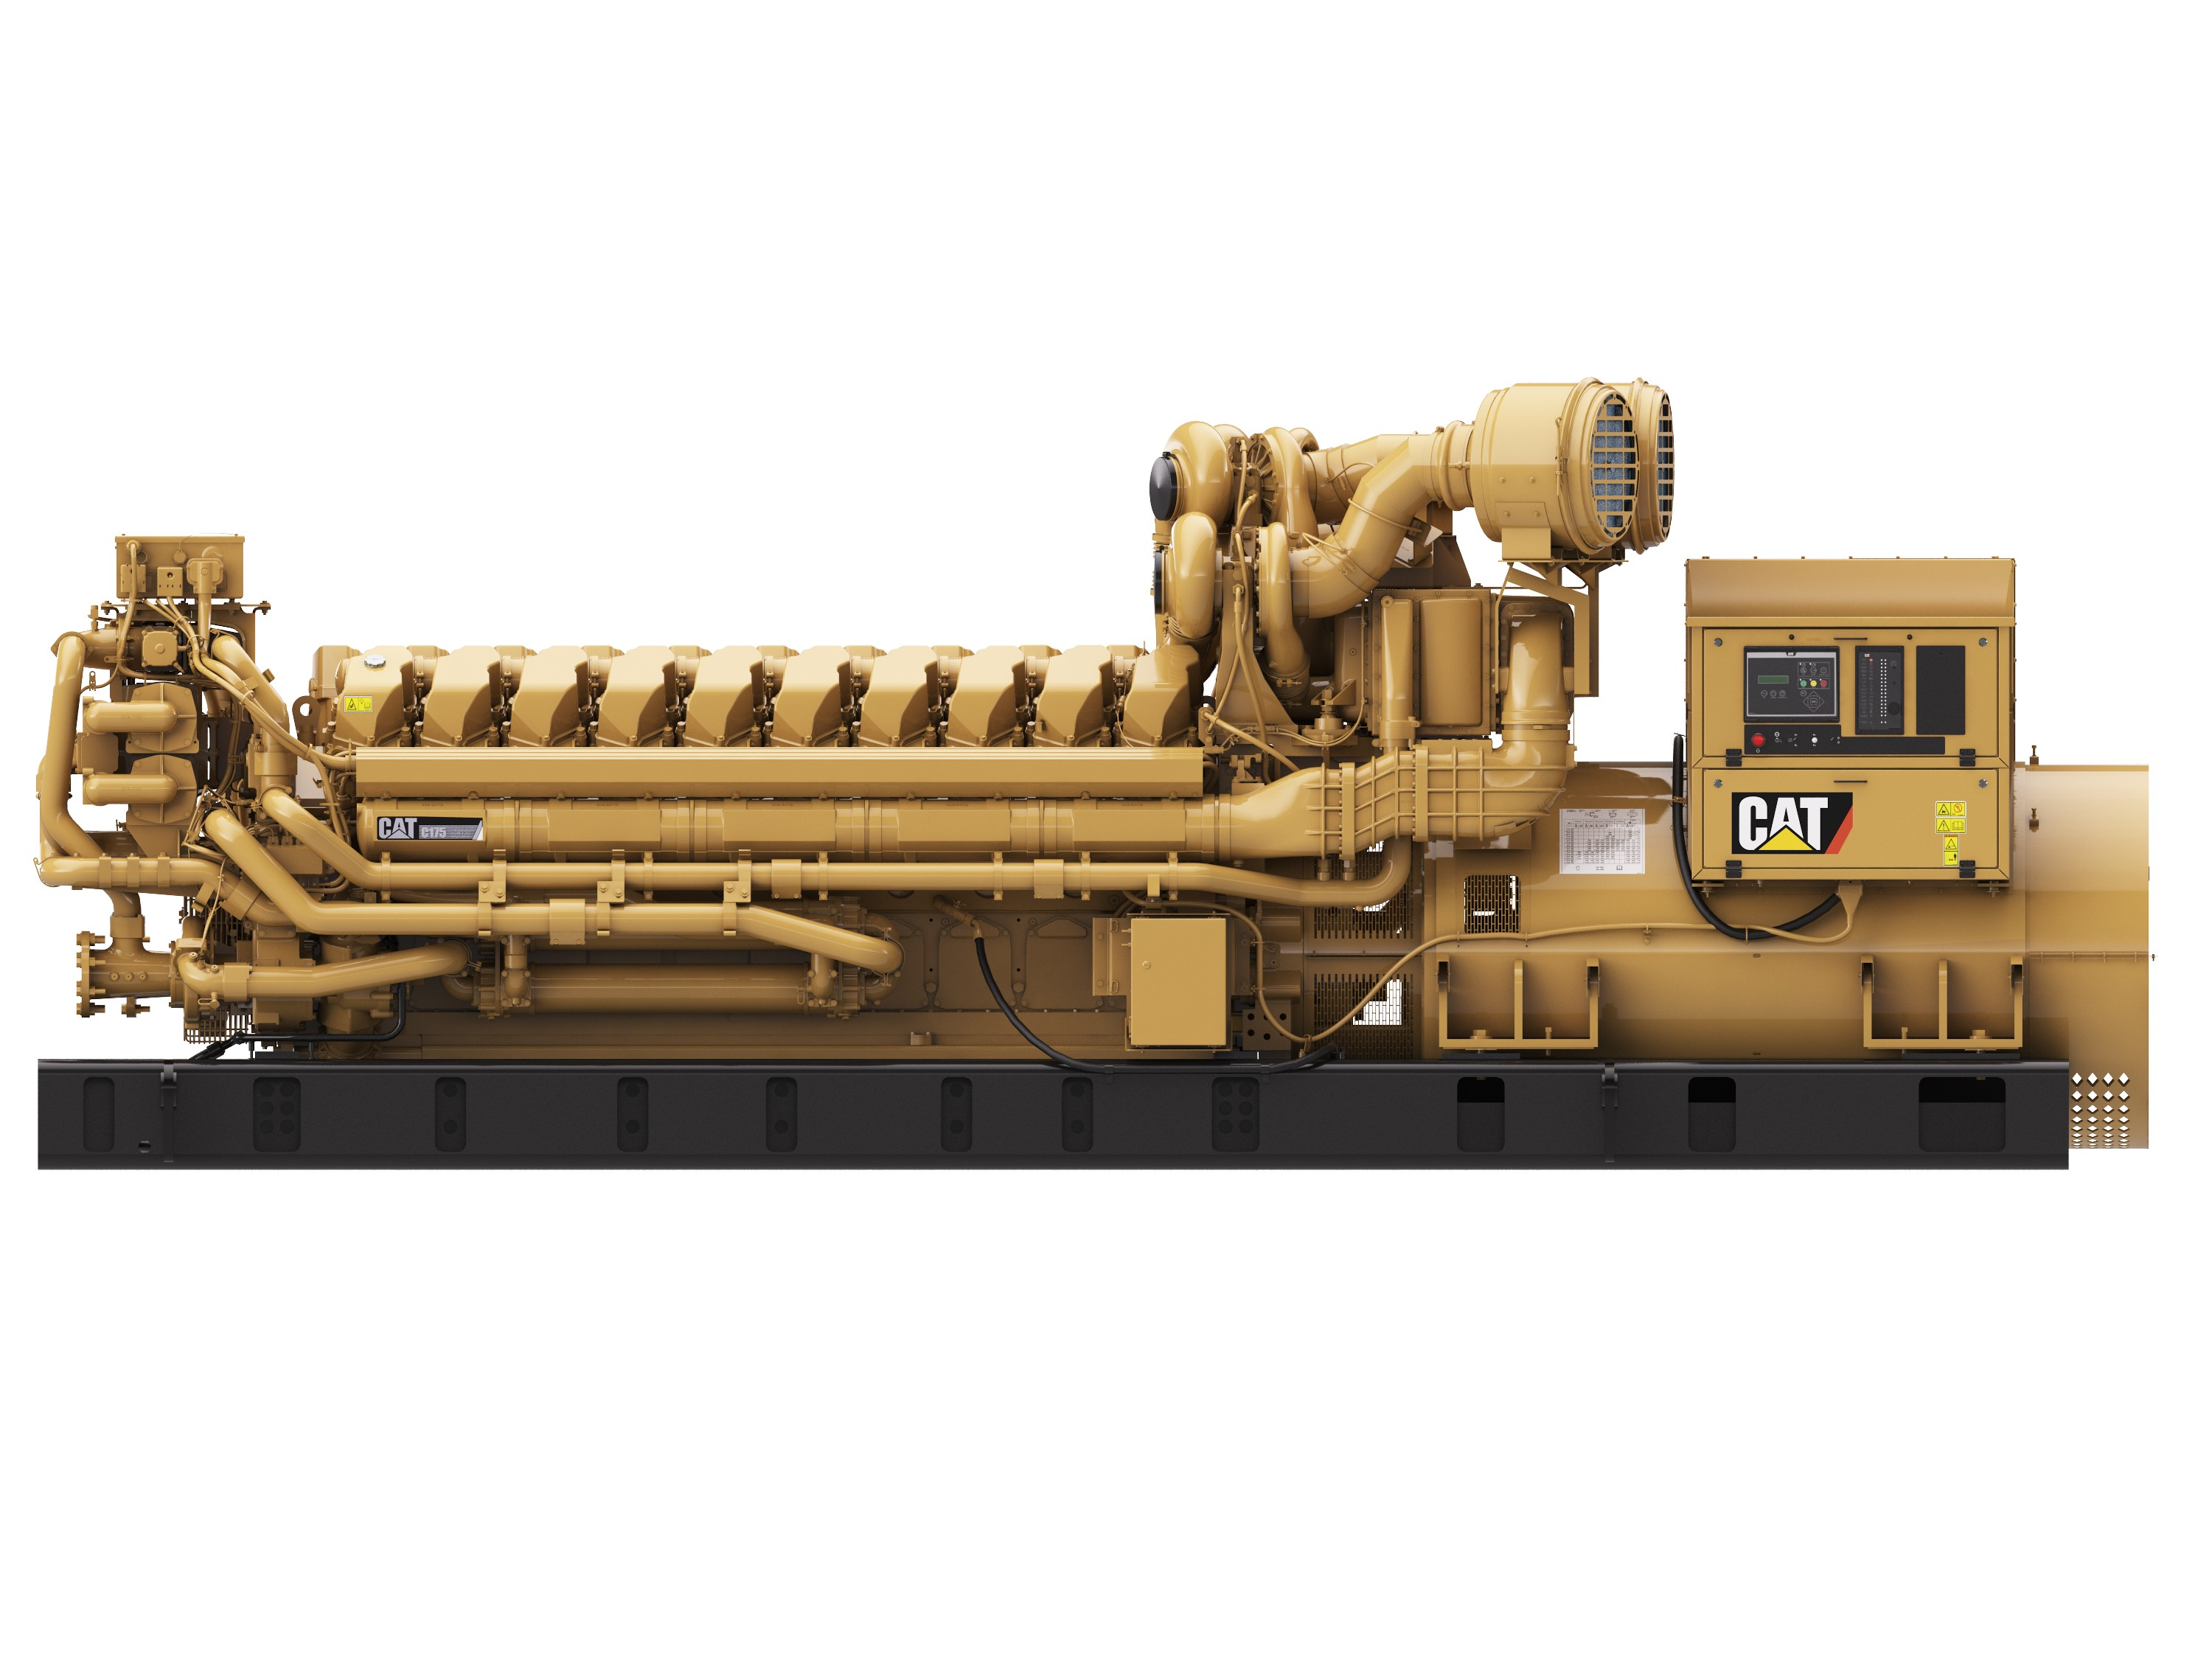 Caterpillar C175 20 generator set Electrical connection